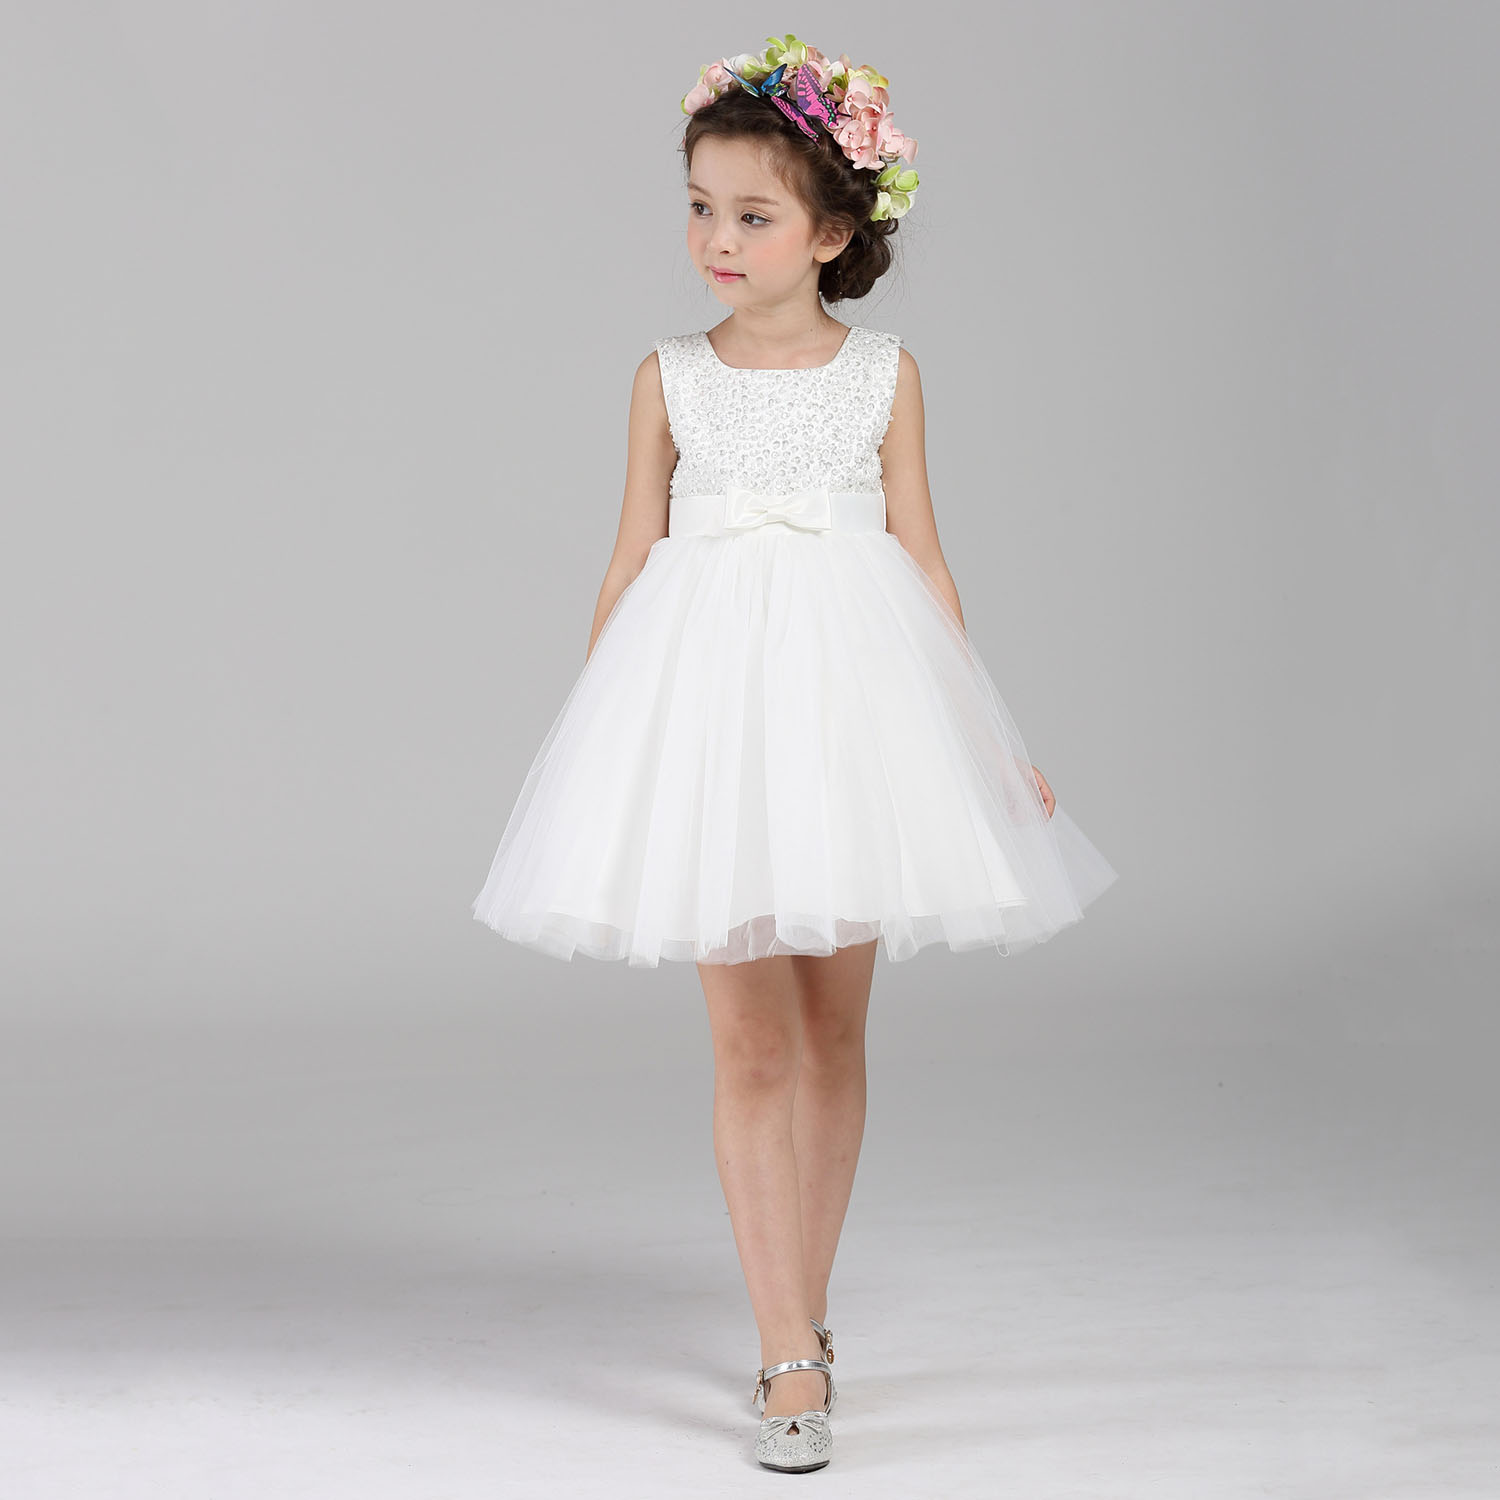 ABWE Best Sale DMfgd White Flowers Girls Dress High Quality Lace Bow Girl Dresses For Wedding Kids Girl Clothes New Birthday P high quality colorful flowers and girl pattern removeable wall stickers